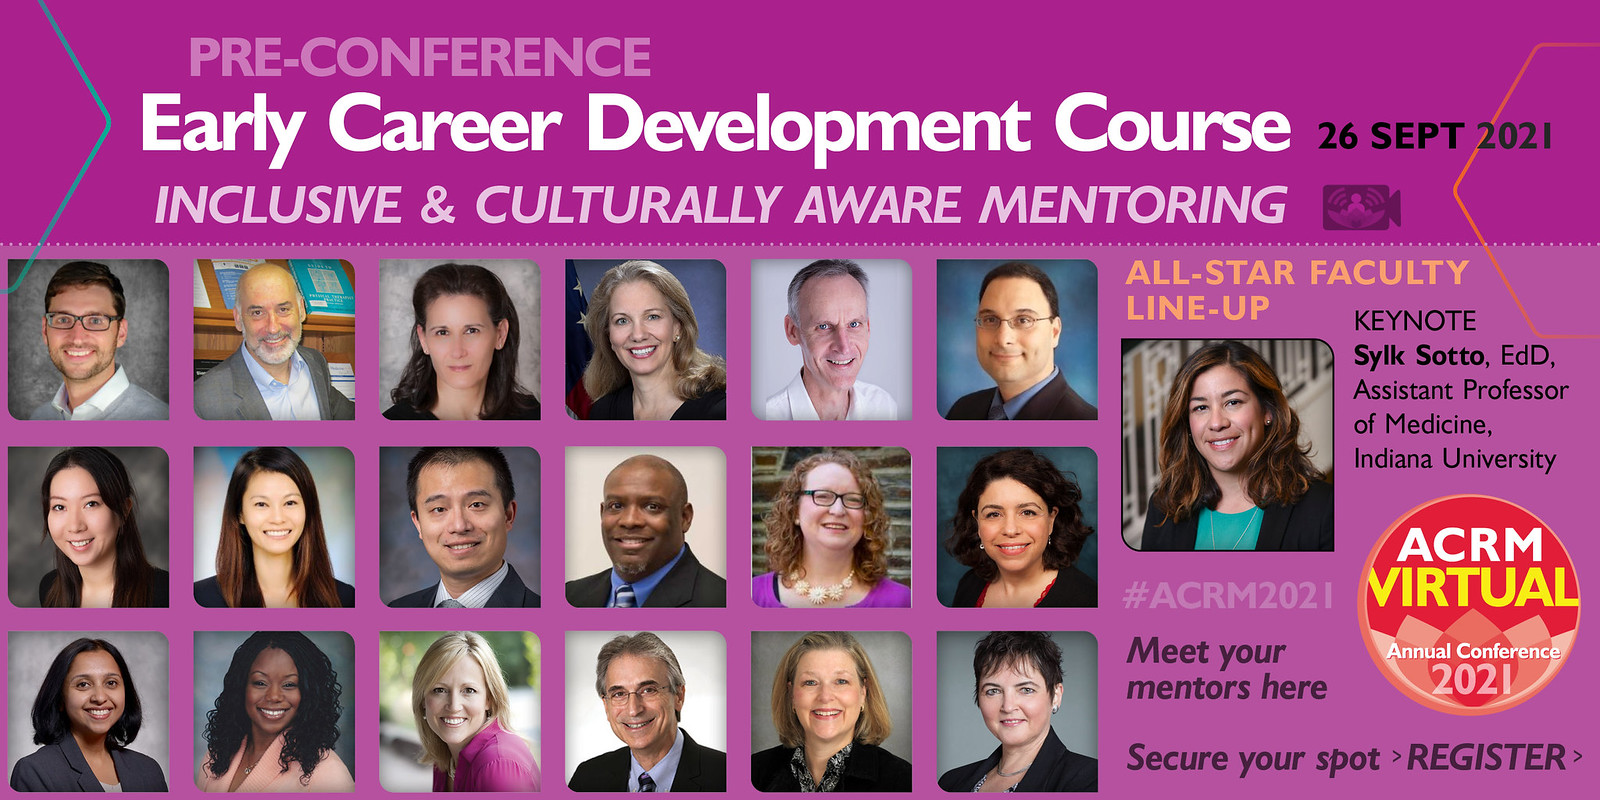 ACRM Early Career Development Course 2021 faculty image